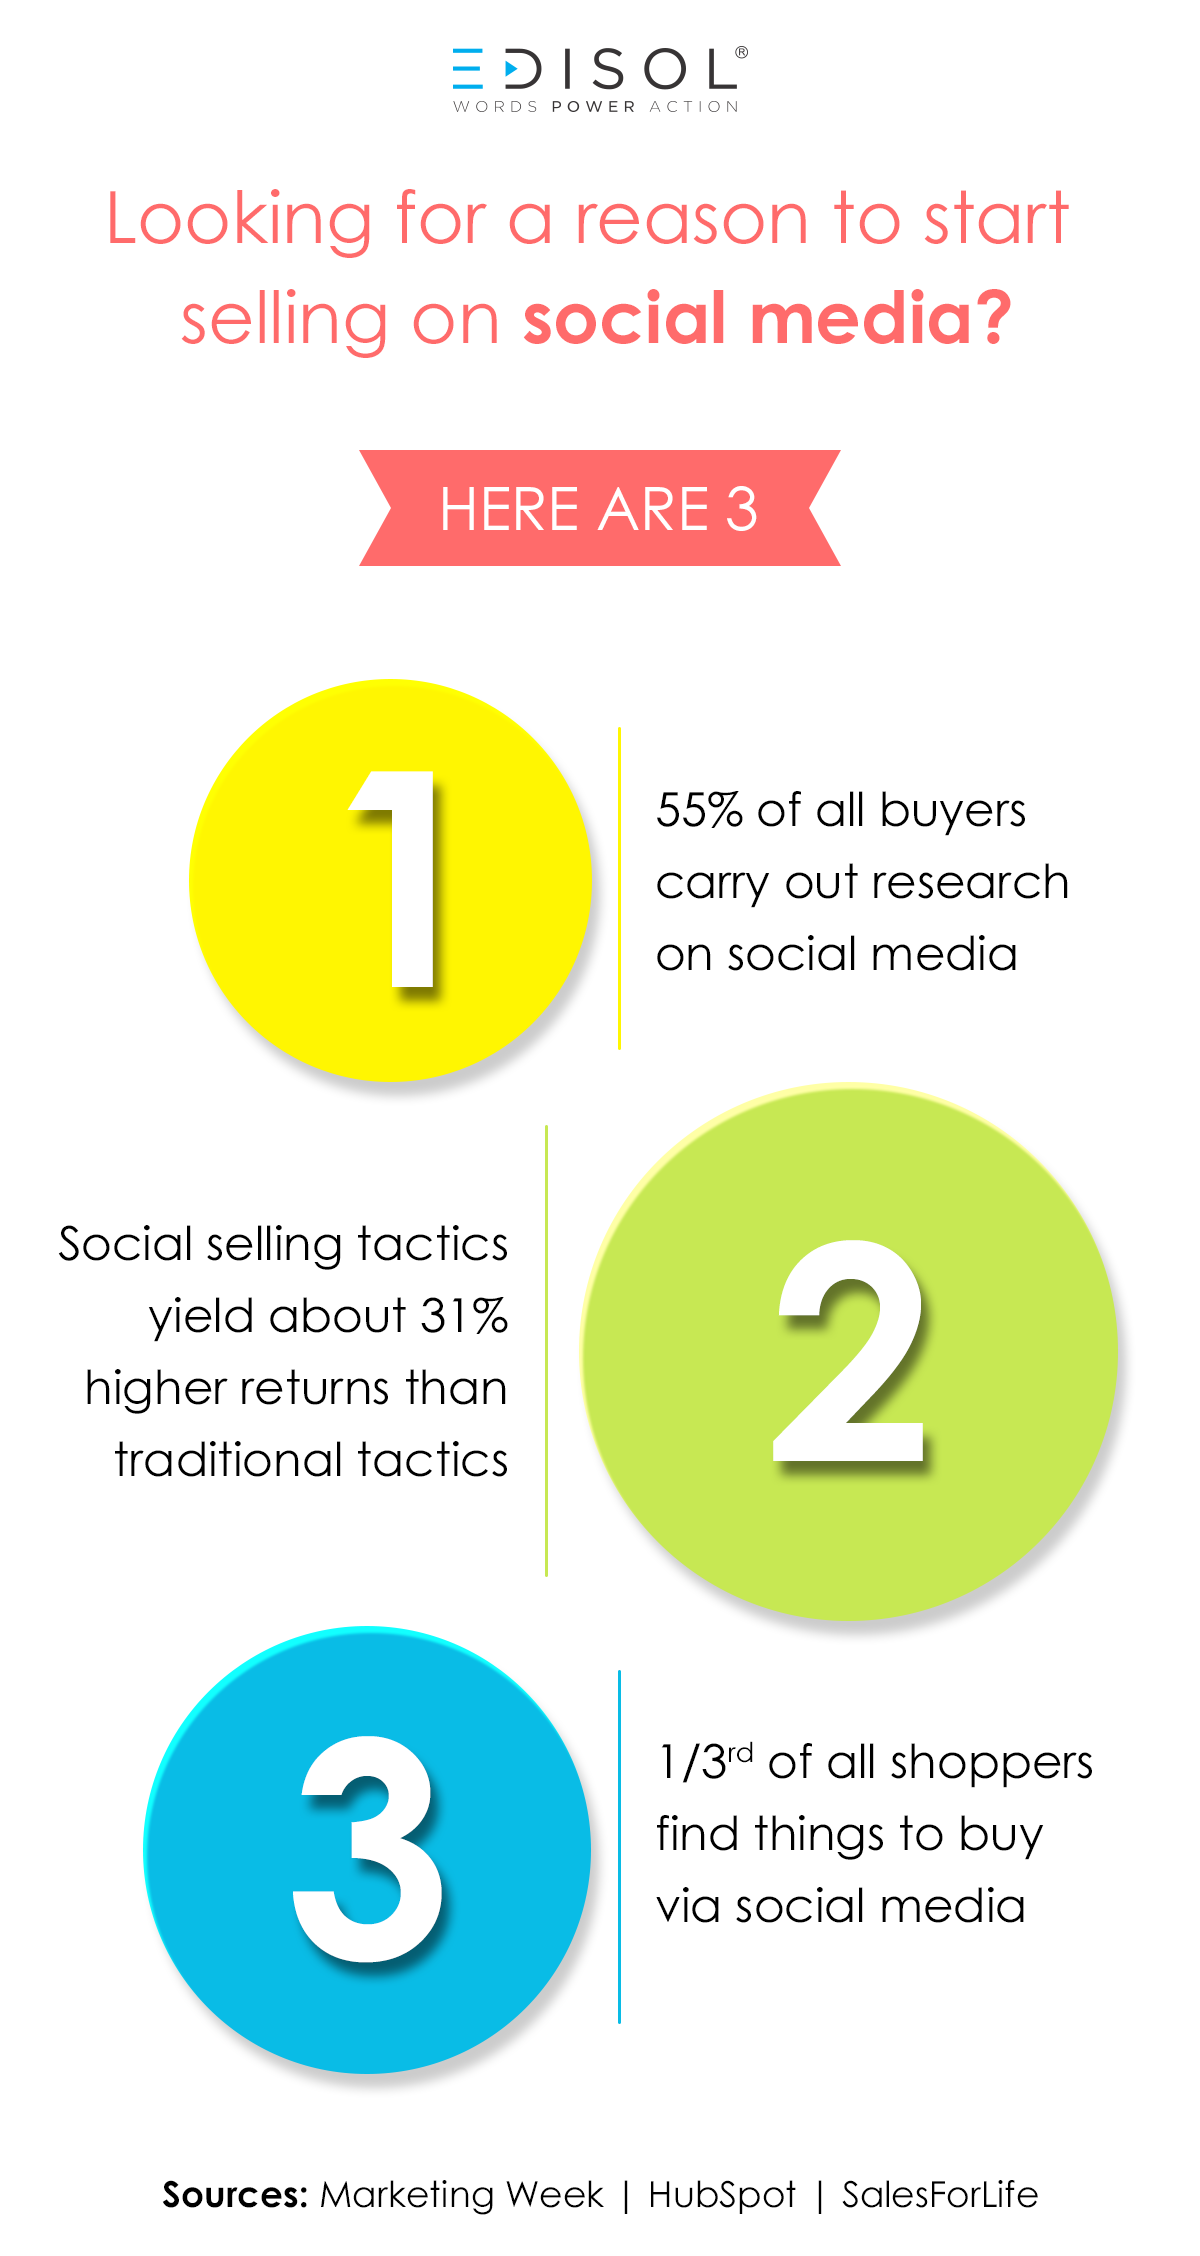 Edisol_Jan2020_IG_Looking for a reason to start selling on social media-Here are 3_v2.png